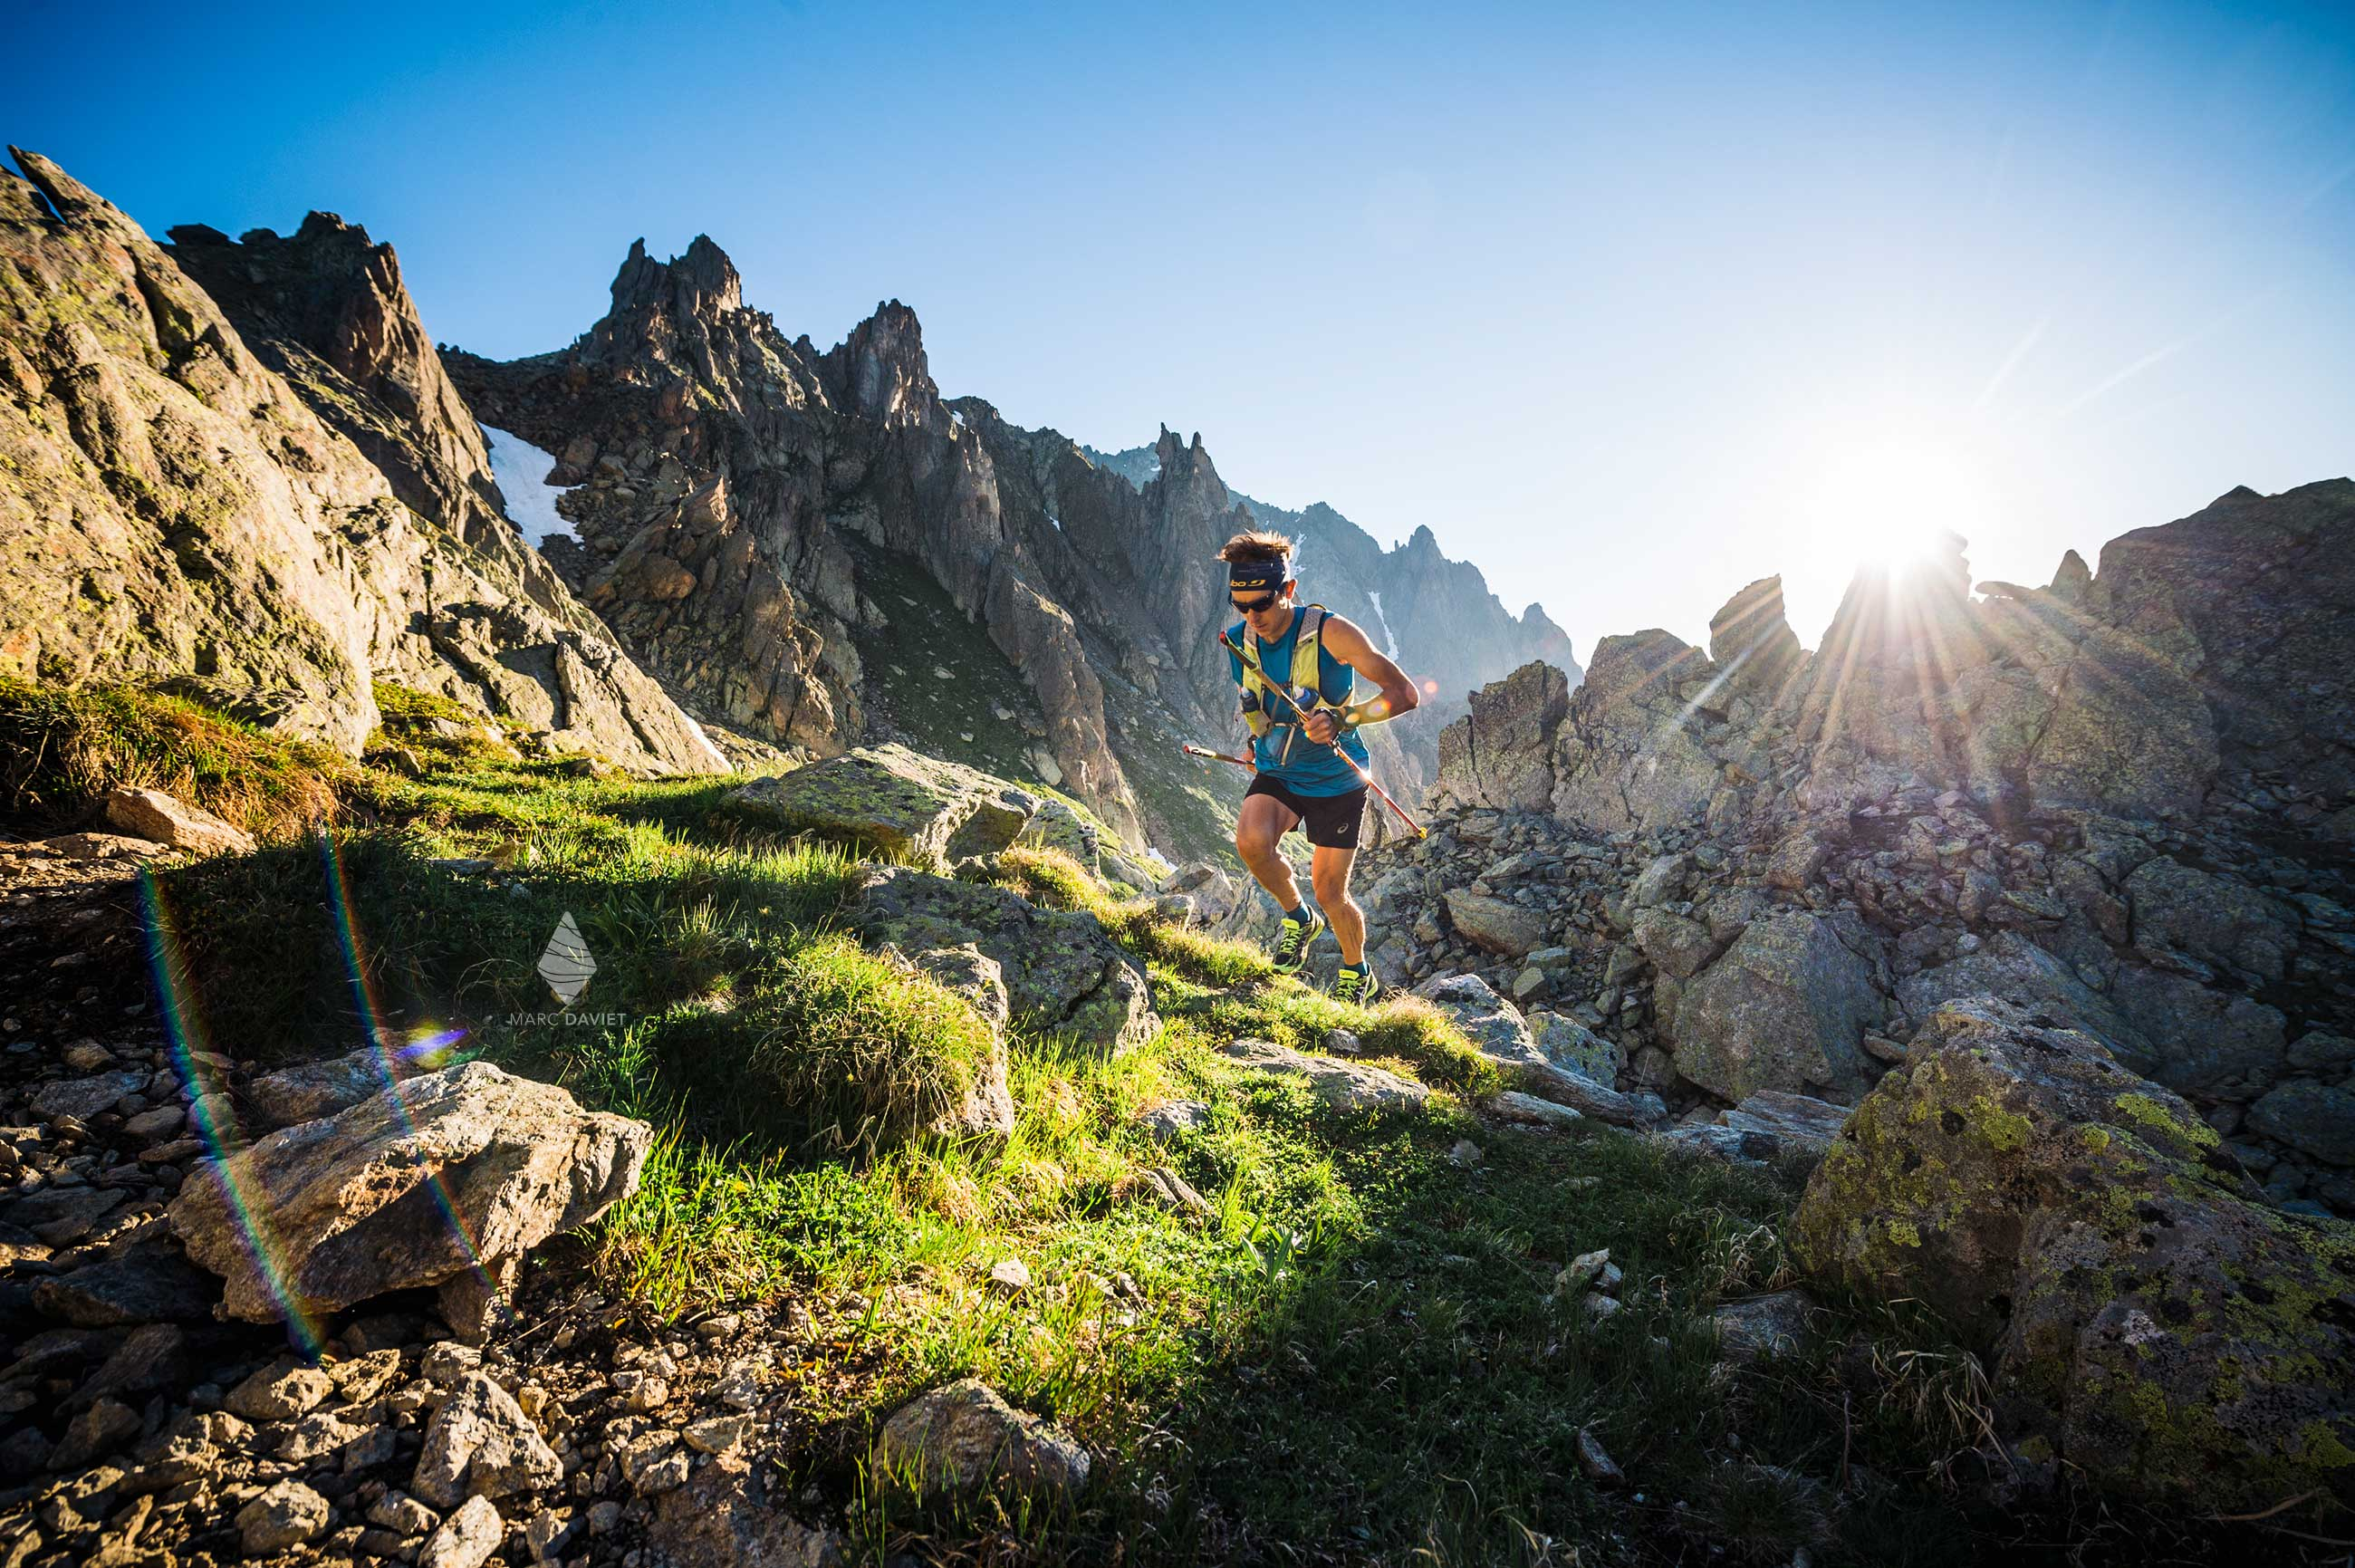 Trail running in Aiguilles rouges.